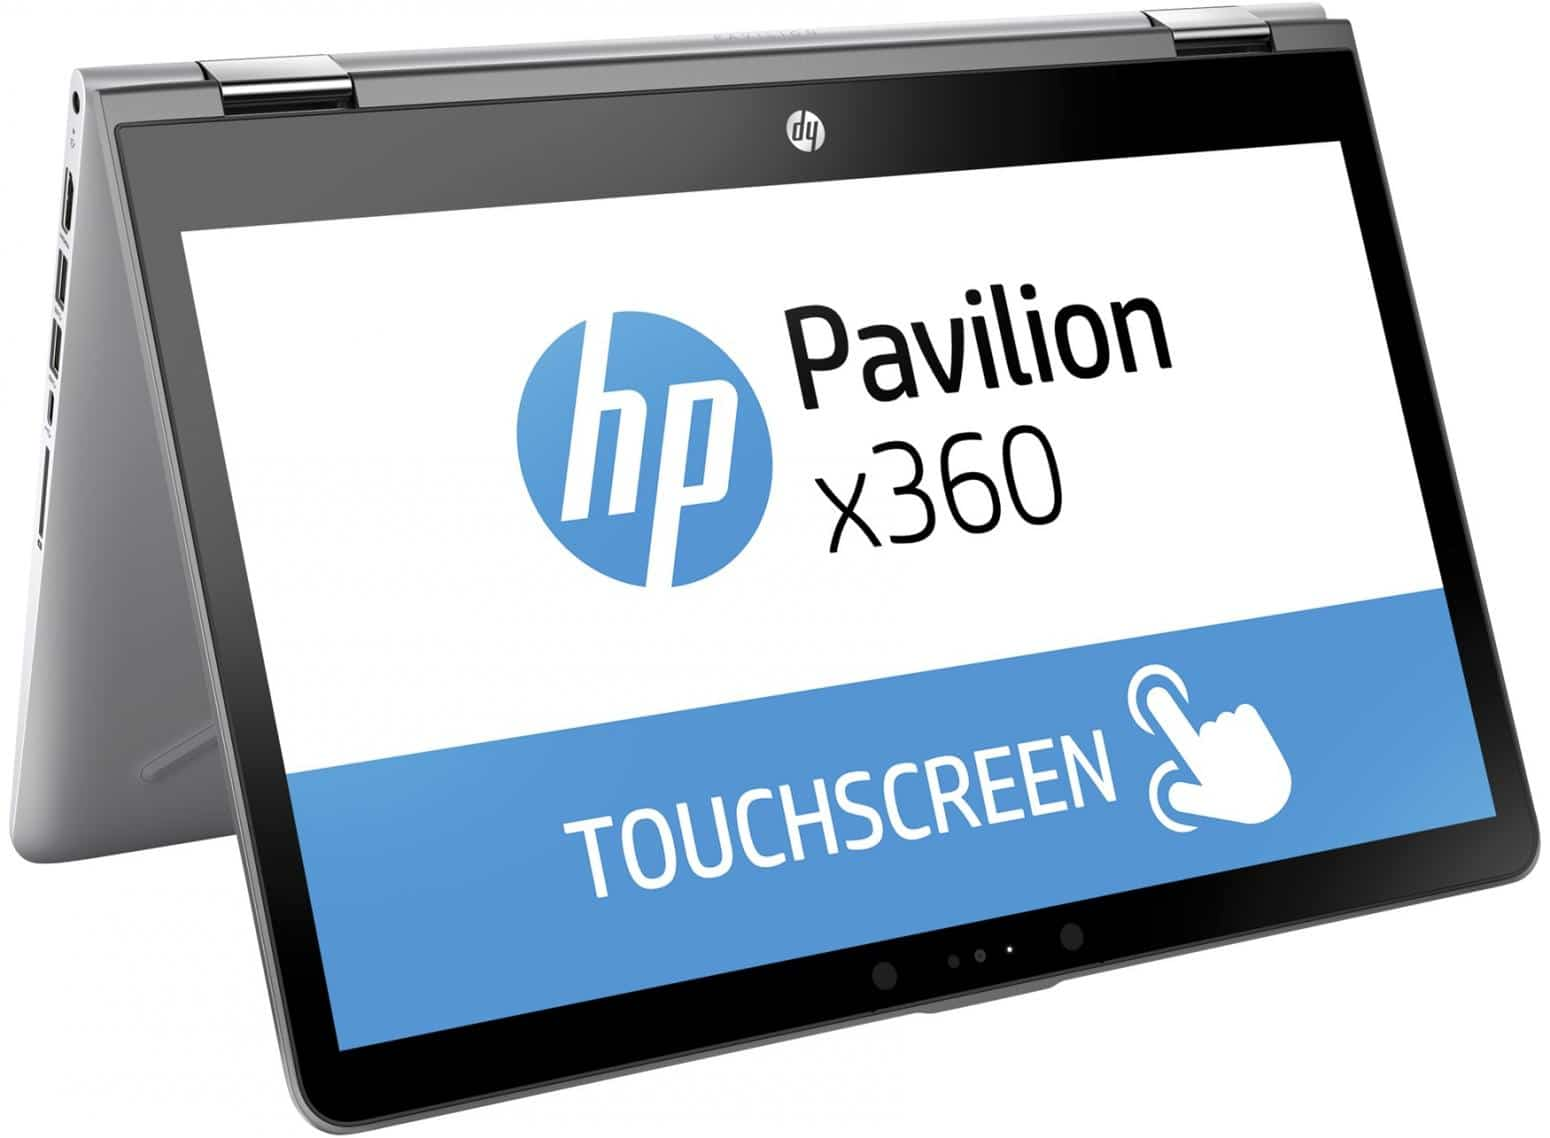 "HP Pavilion x360 14-ba107nf, ultrabook 14"" Tablette IPS i7 Refresh 940MX à 999€"